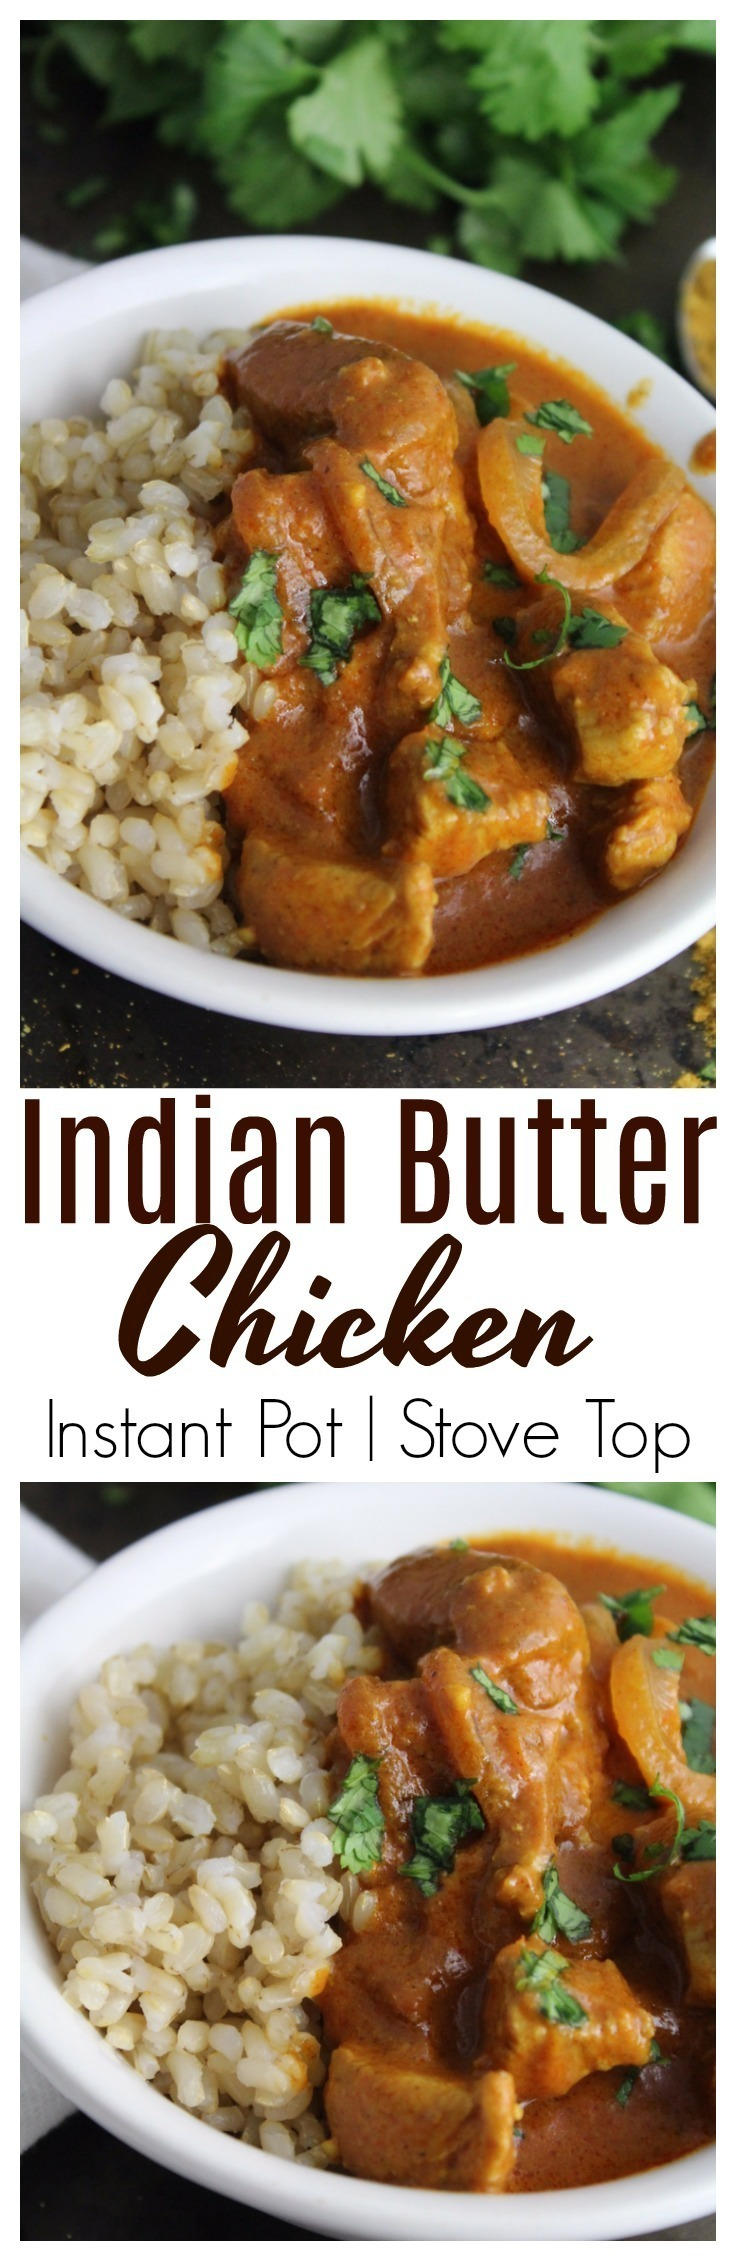 Rich, fragrant spices combined with chicken in a thick, butter sauce that's delicious when served on rice!  Make in the Instant Pot or on stove top. #chicken | #InstantPot | #easy